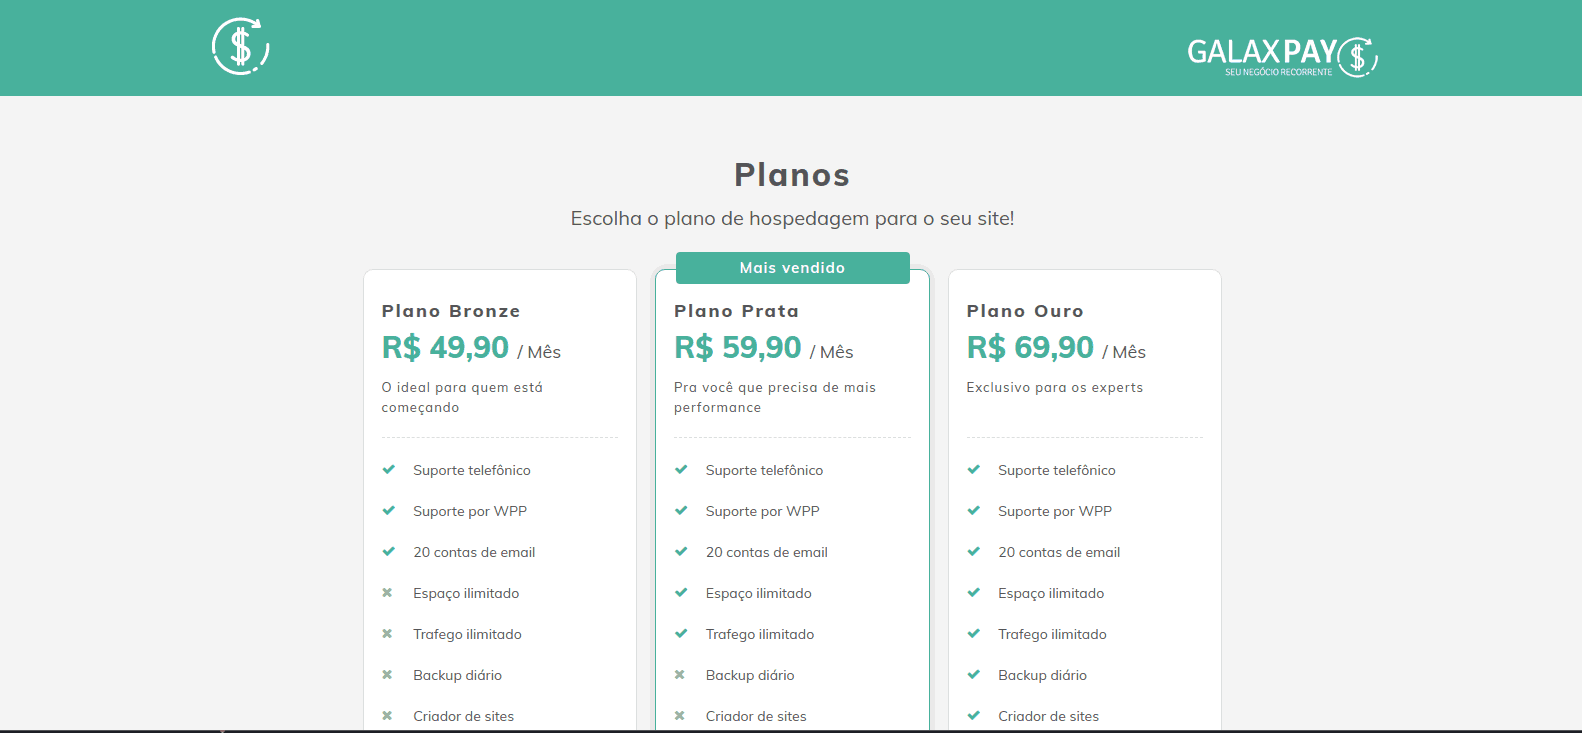 planos%20galax%20pay.png